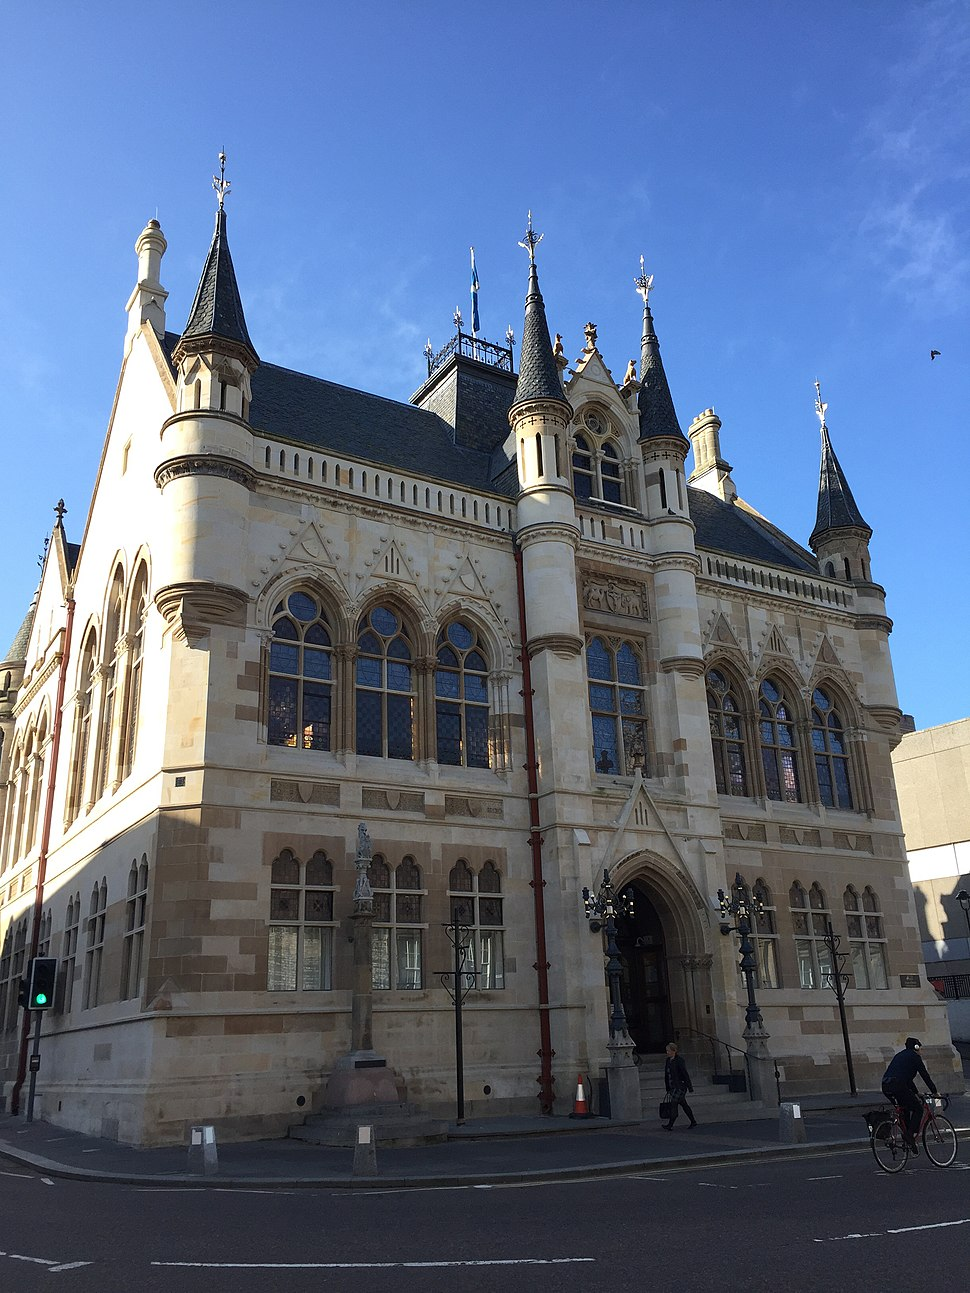 Inverness, High Street, Town Hall